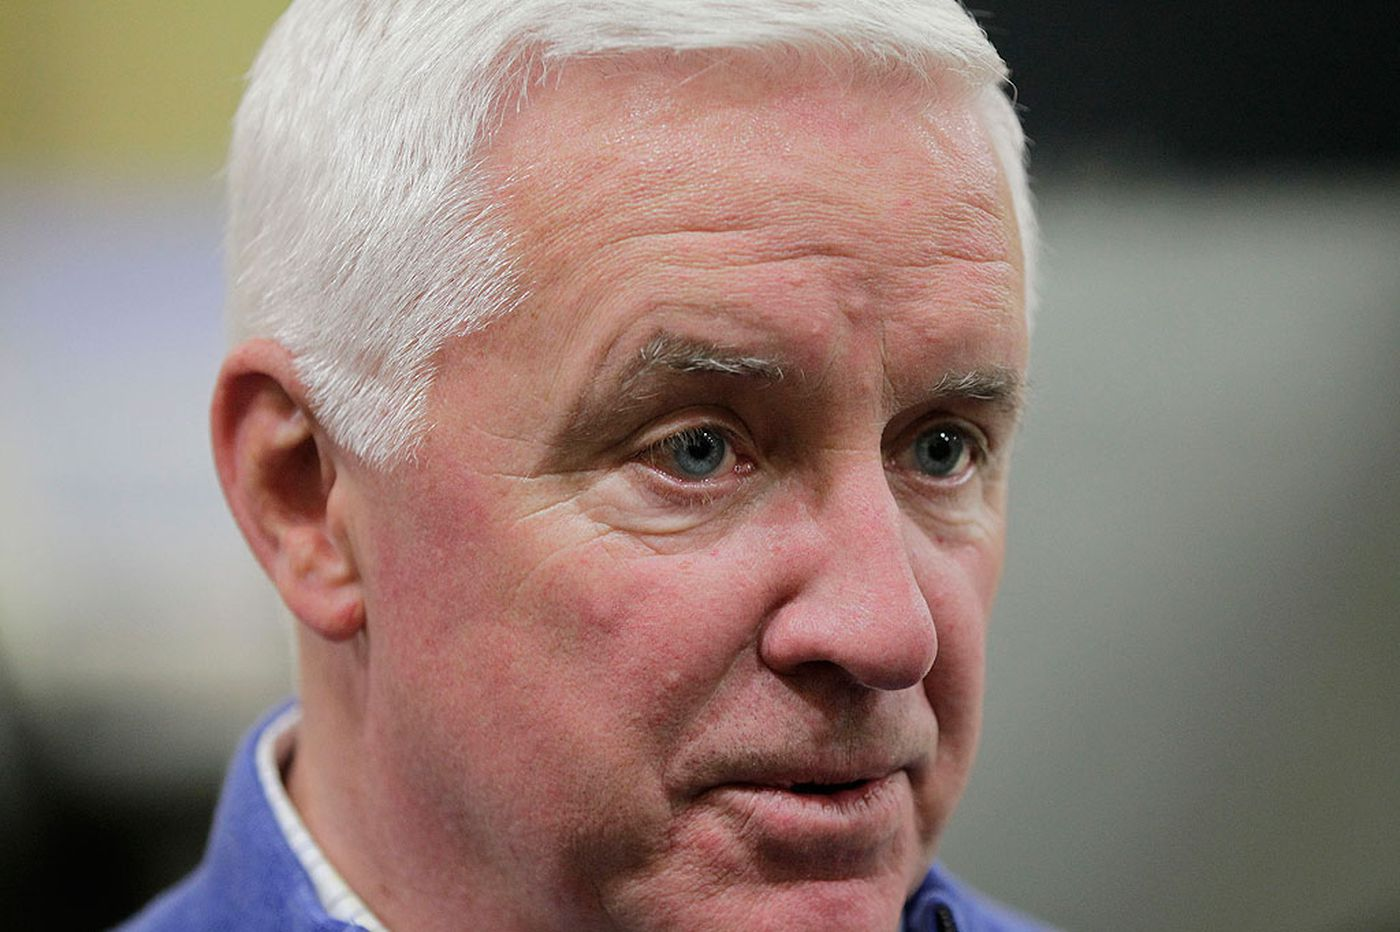 Final sprint: Corbett says race 'boils down to one word'